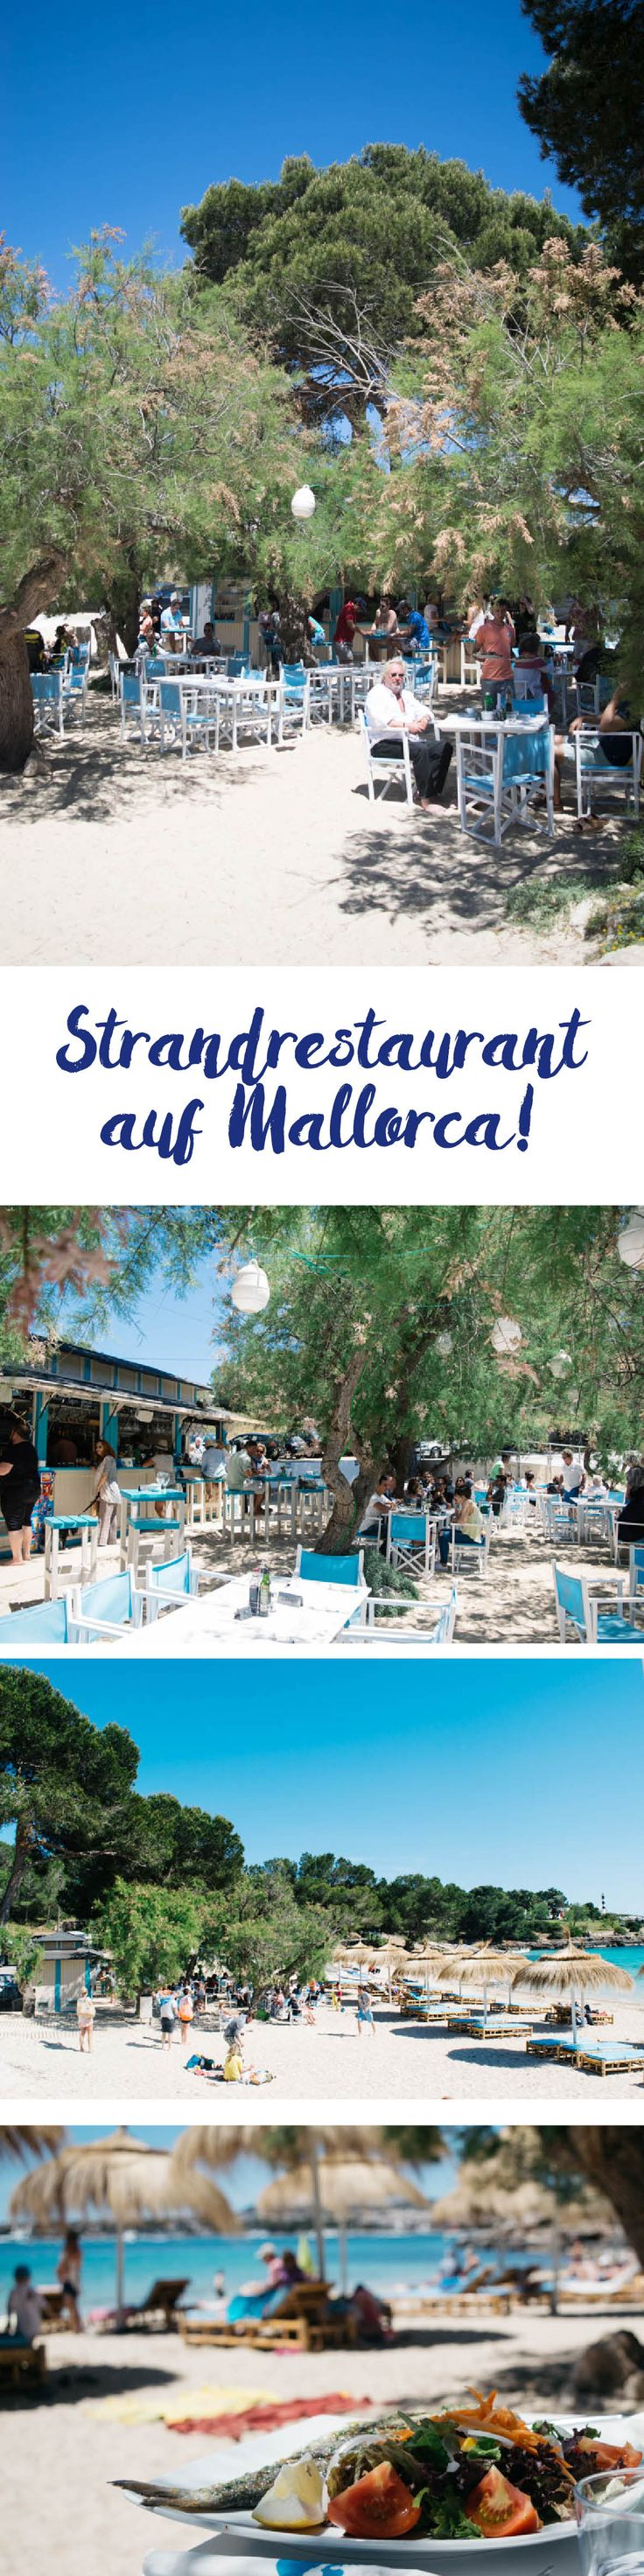 Leckeres Strandrestaurant auf Mallorca in Porto Colom